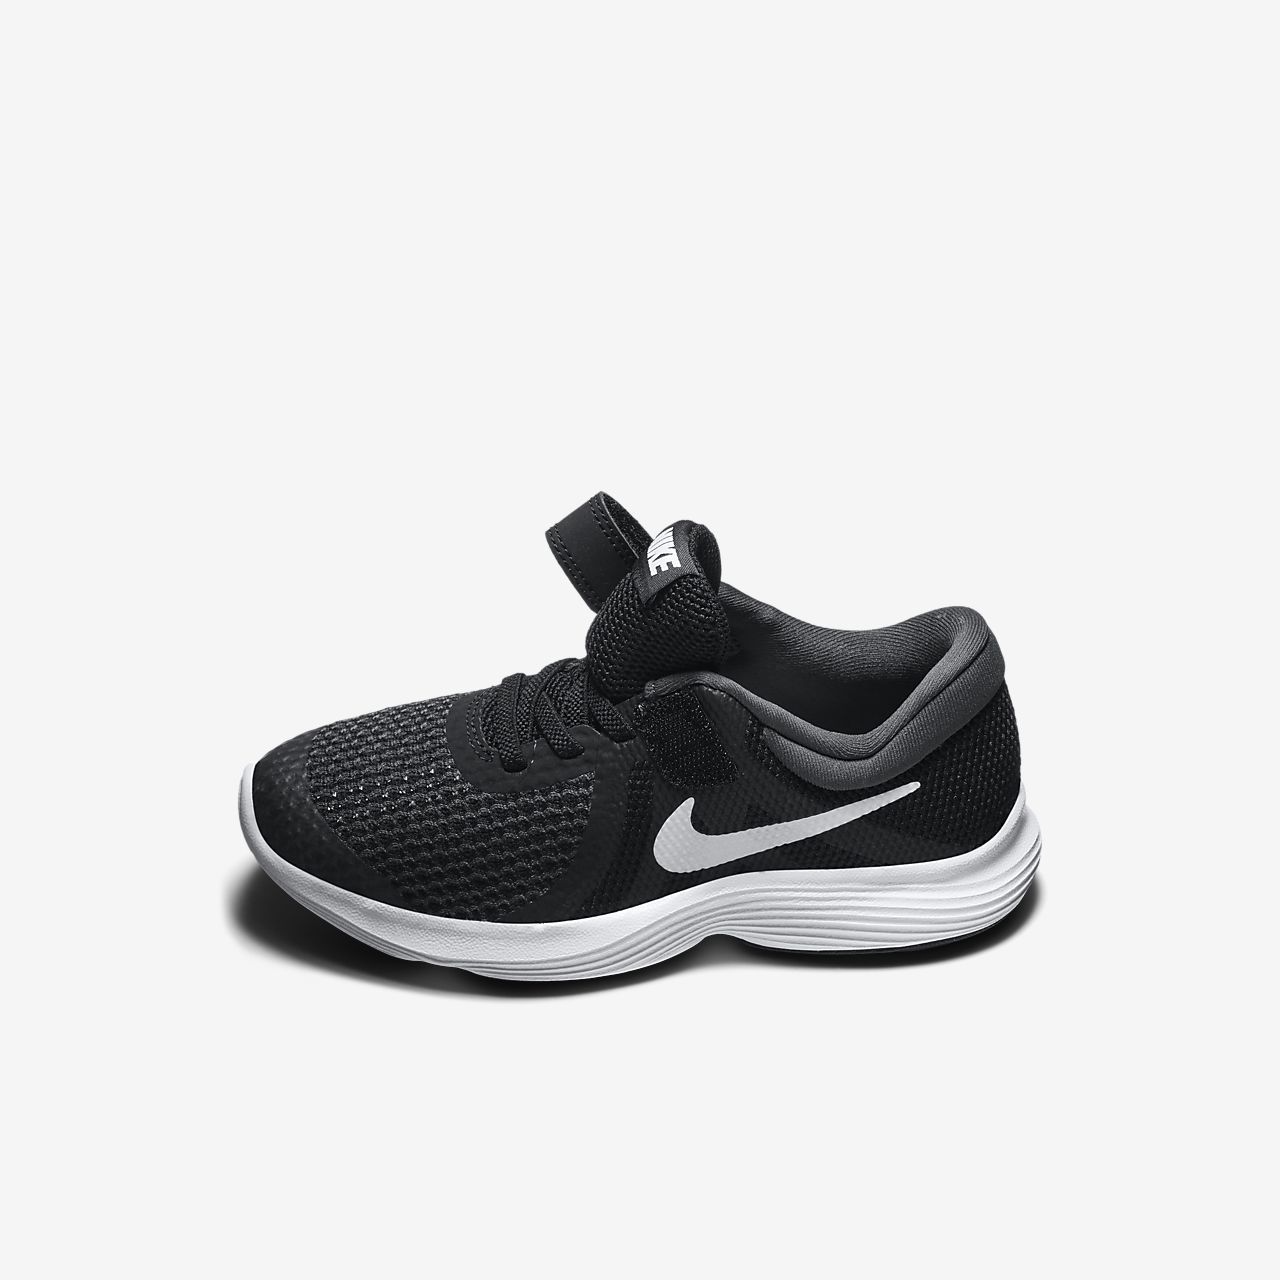 Martin Luther King Junior Escoba esperanza  nike revolution 4 flyease big kids' running shoe > Factory Store